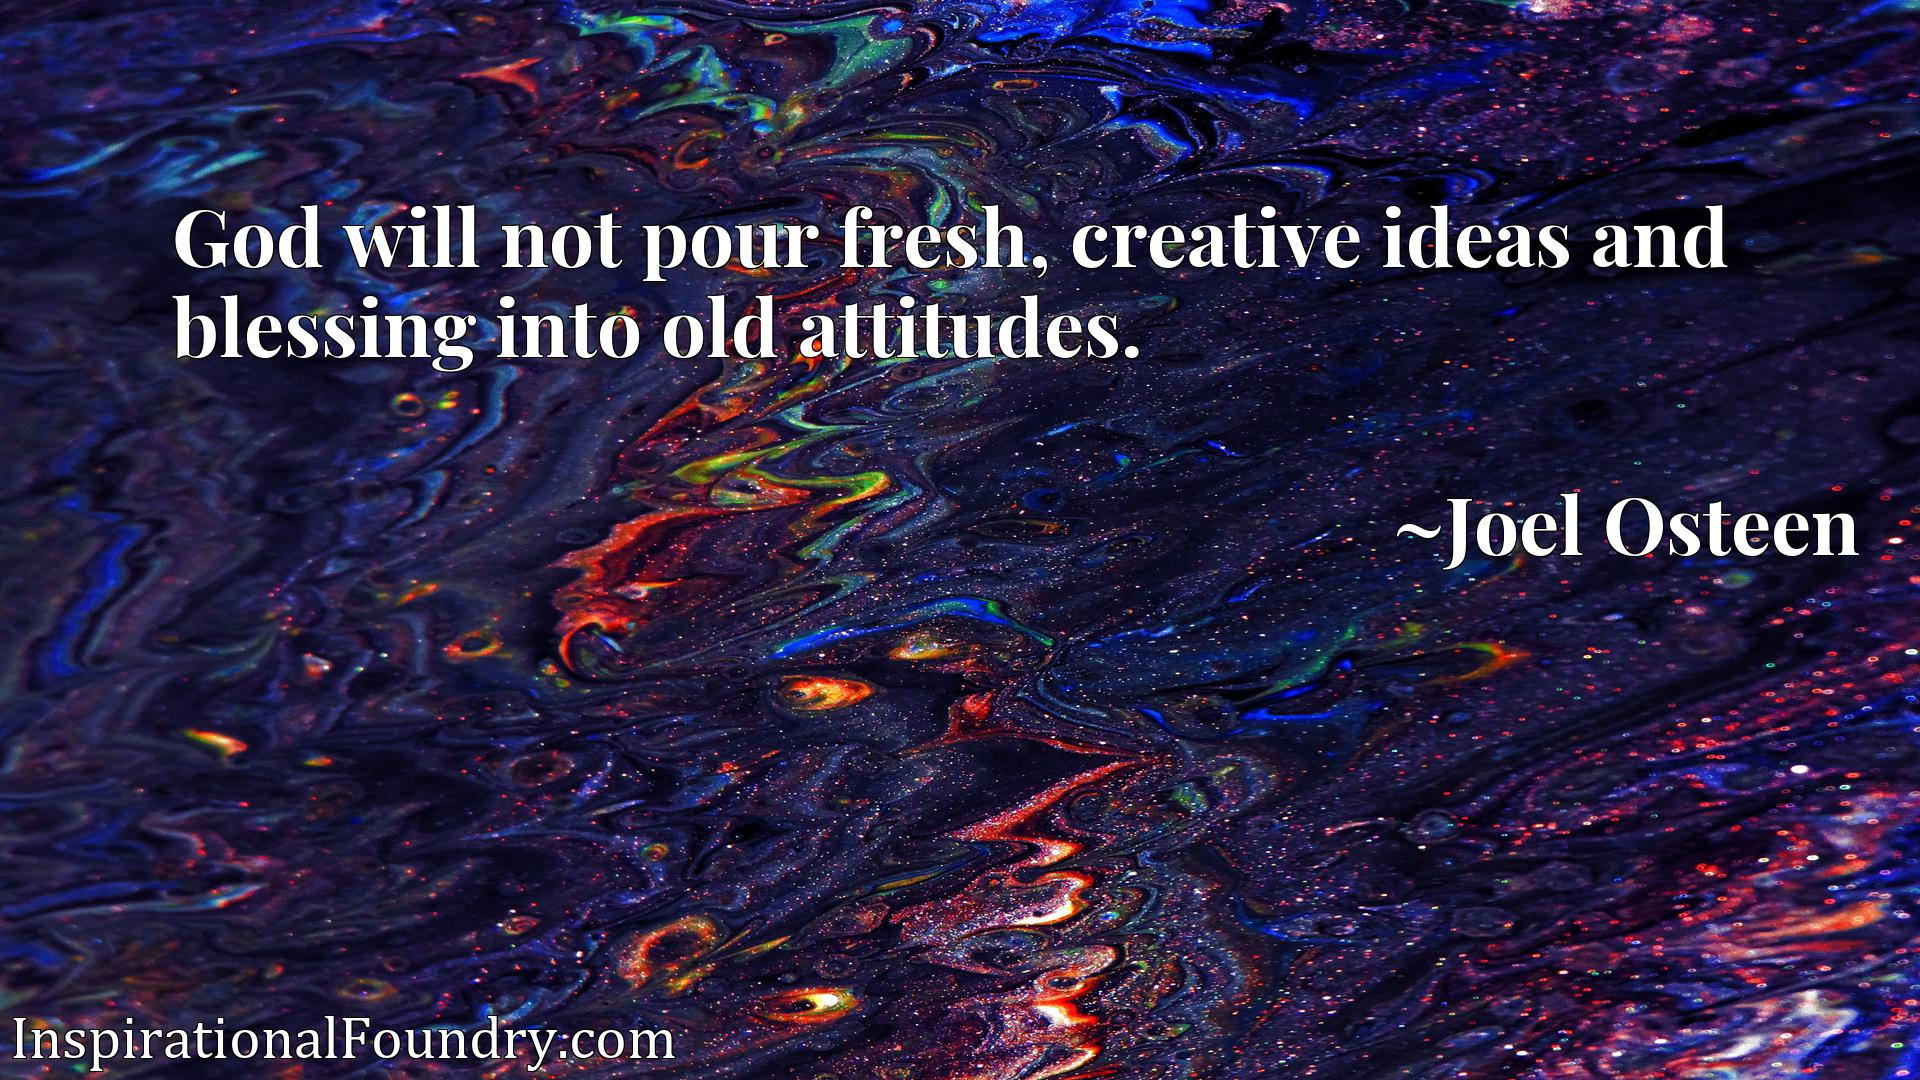 God will not pour fresh, creative ideas and blessing into old attitudes.